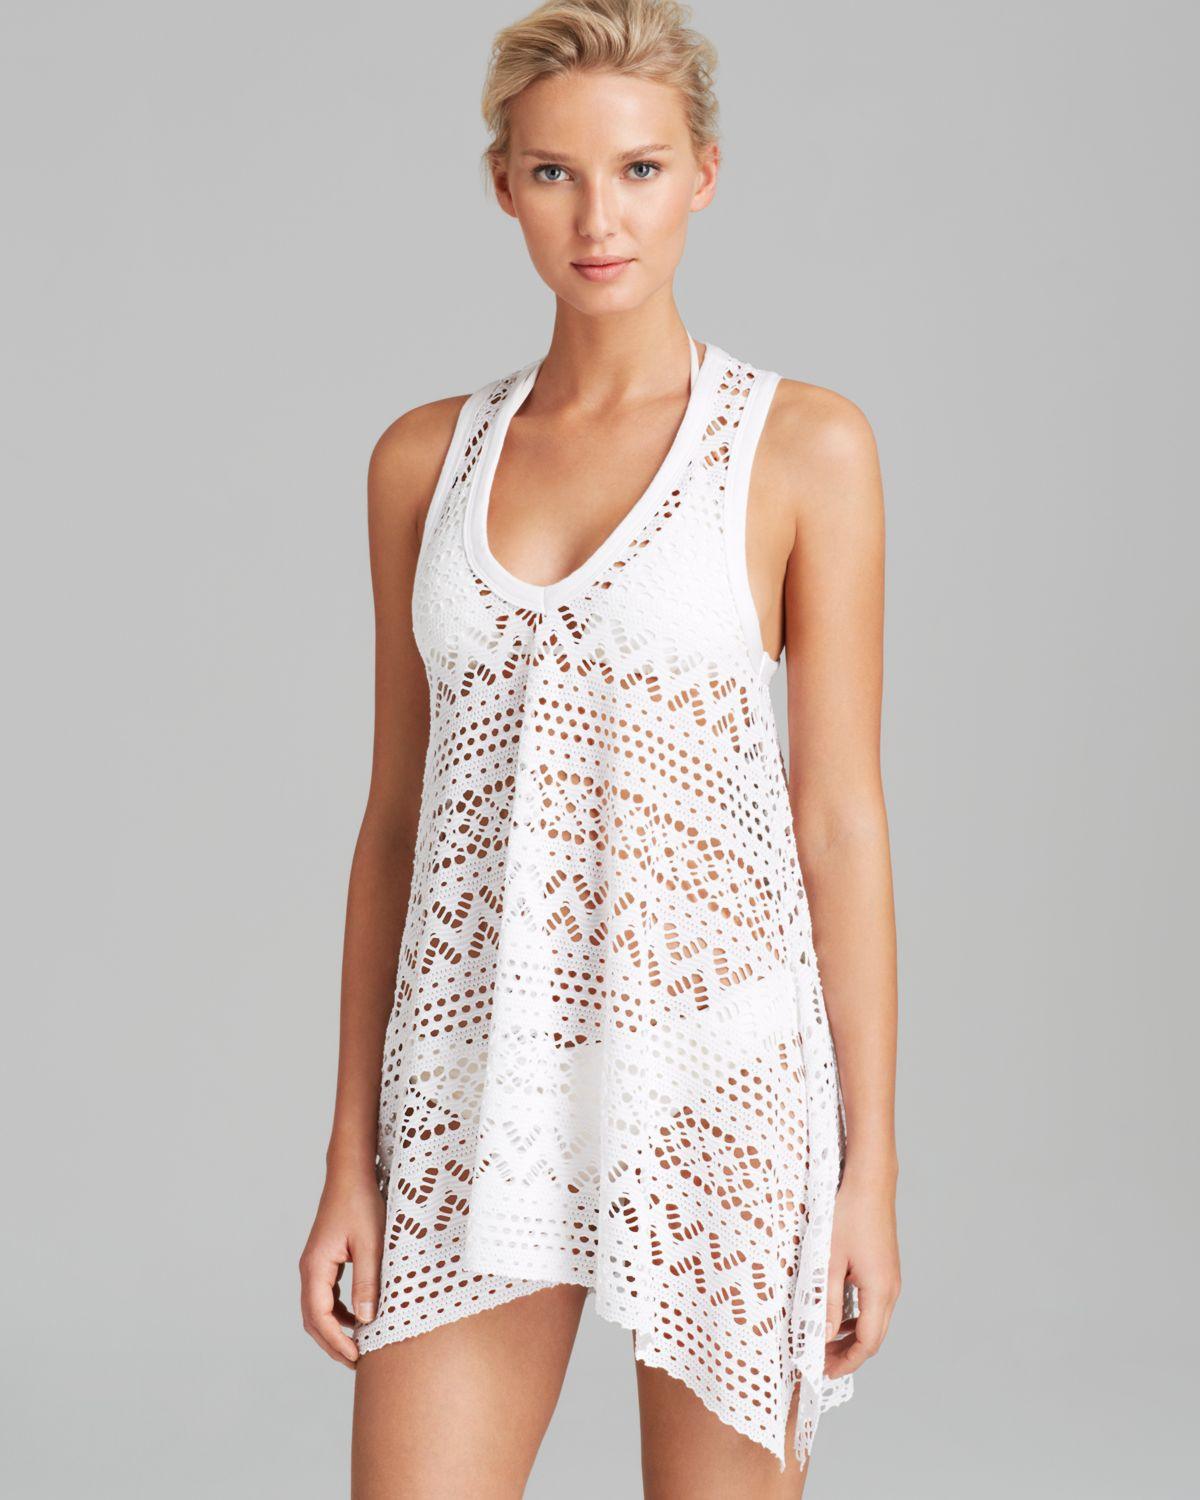 Crochet Bathing Suits Awesome Crochet Bathing Suit Cover Up Of Wonderful 49 Photos Crochet Bathing Suits